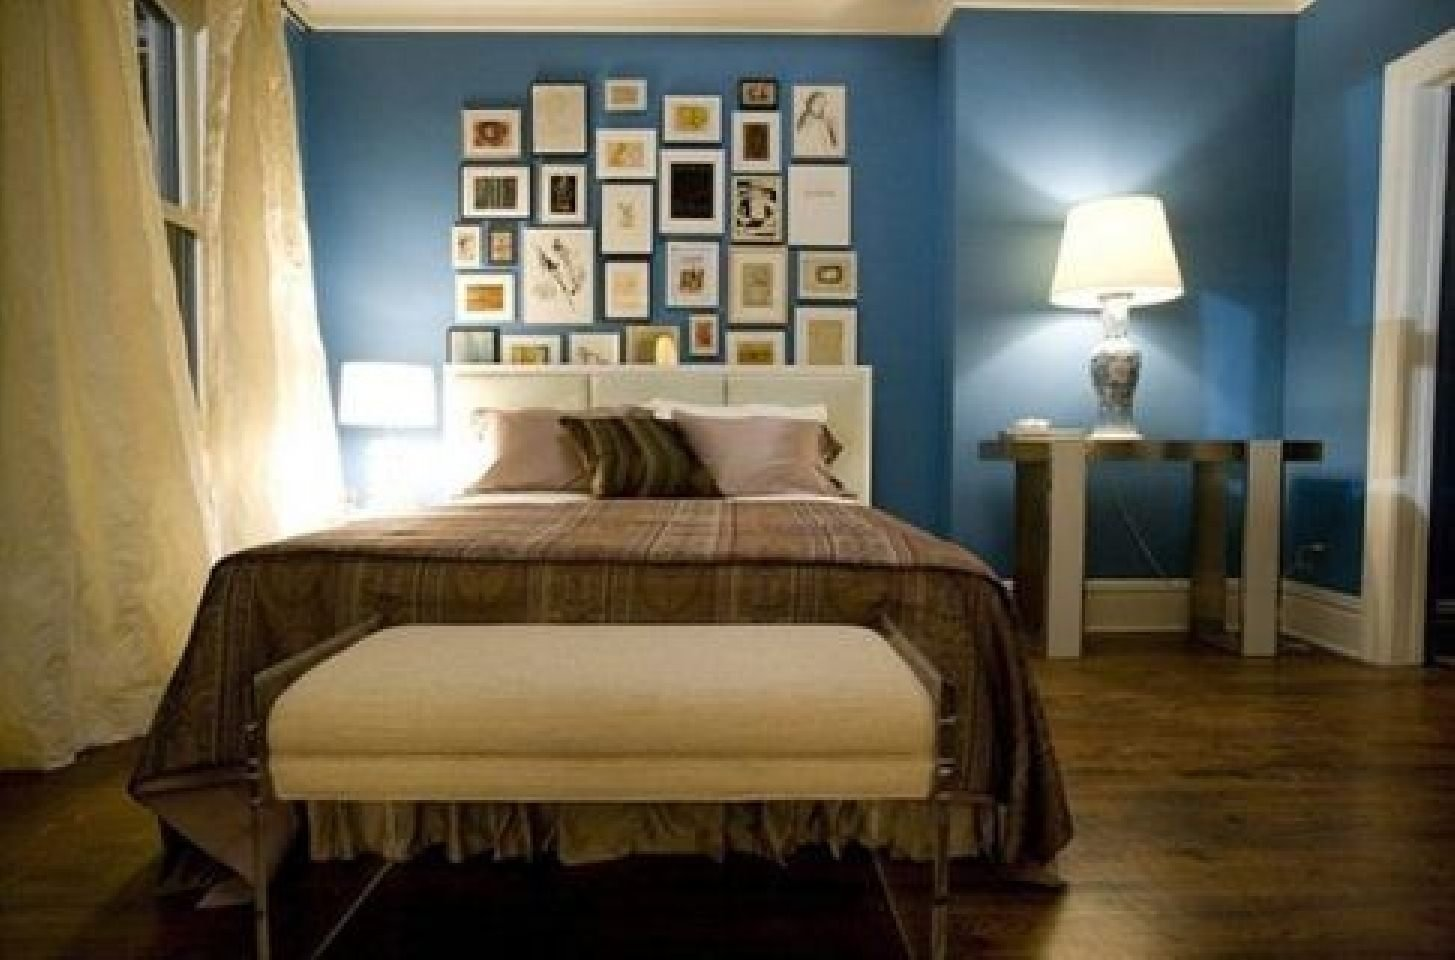 10 Elegant Blue And Brown Bedroom Ideas bedroom ideas brown and blue home delightful 2020